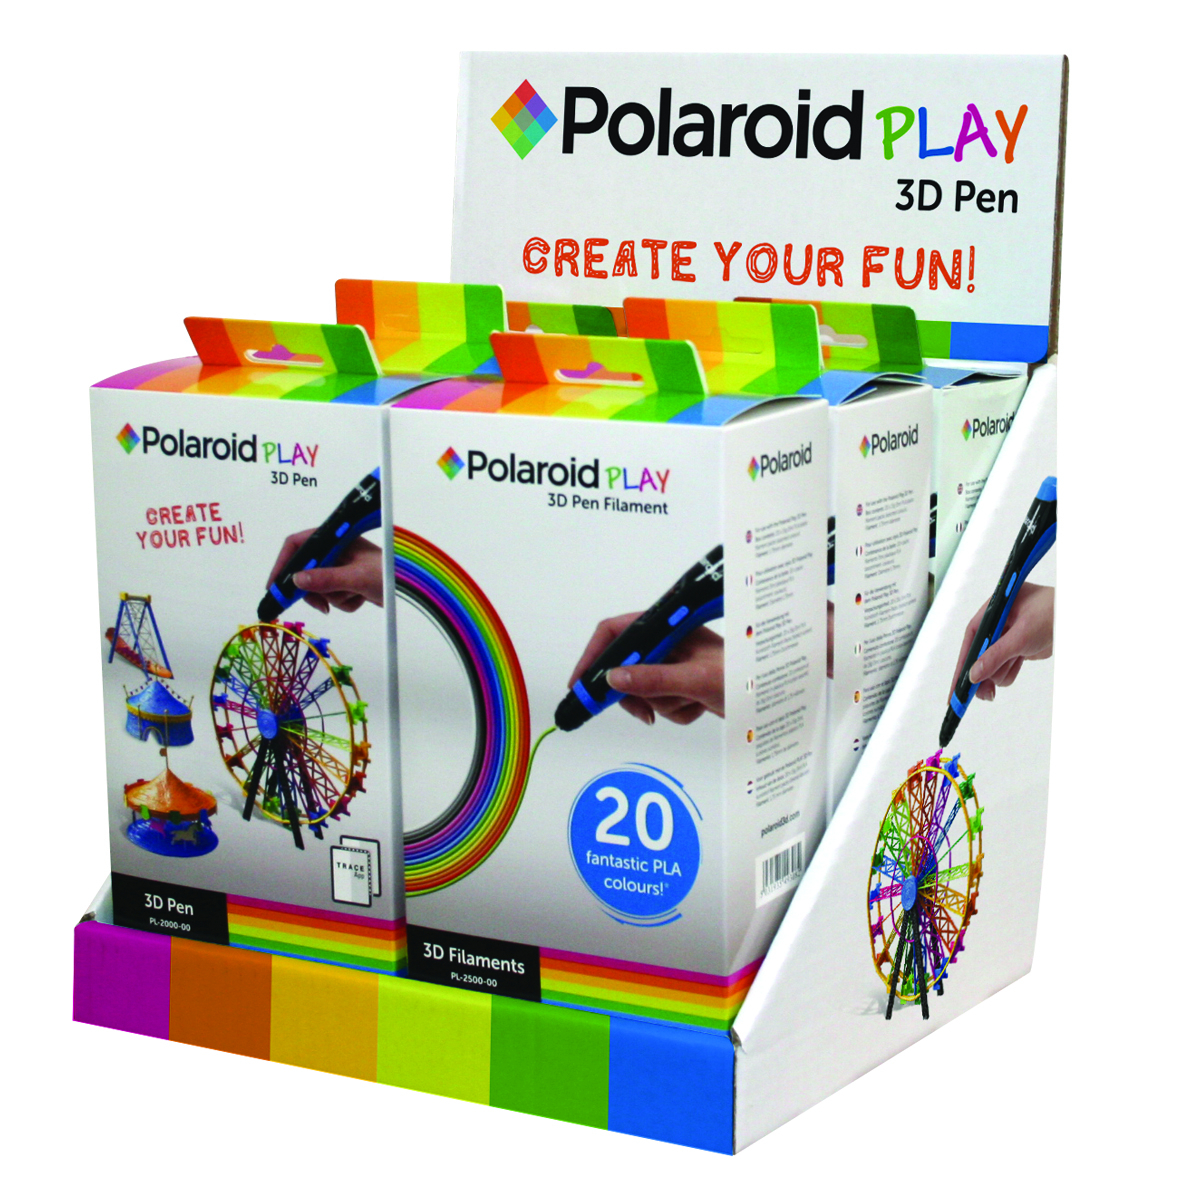 POLAROID PLAY 3D PEN CDU DISPLAY